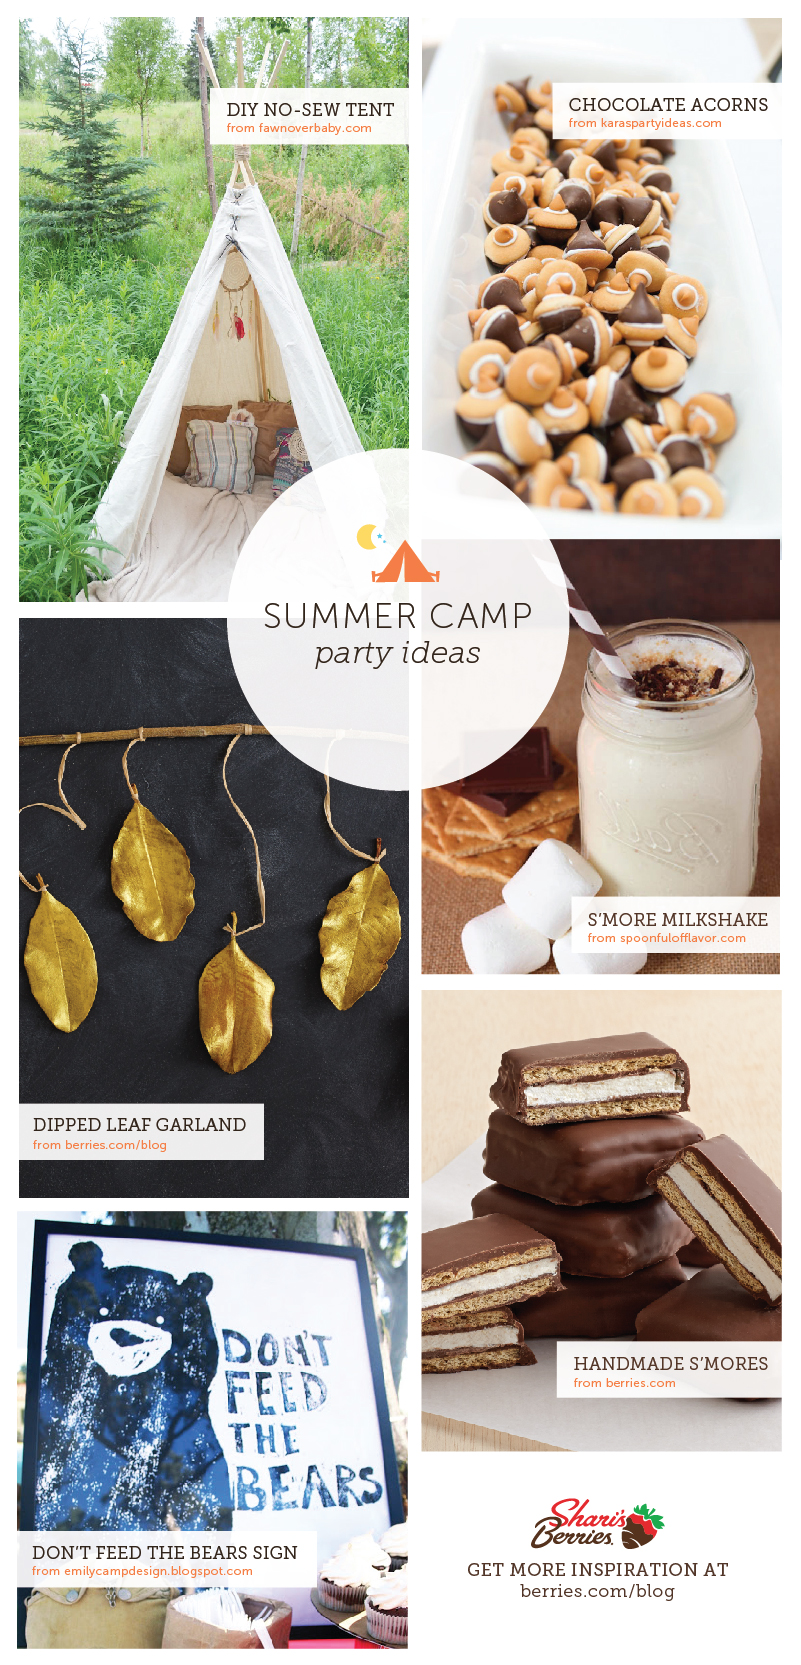 Summer Party Theme: Camp Out